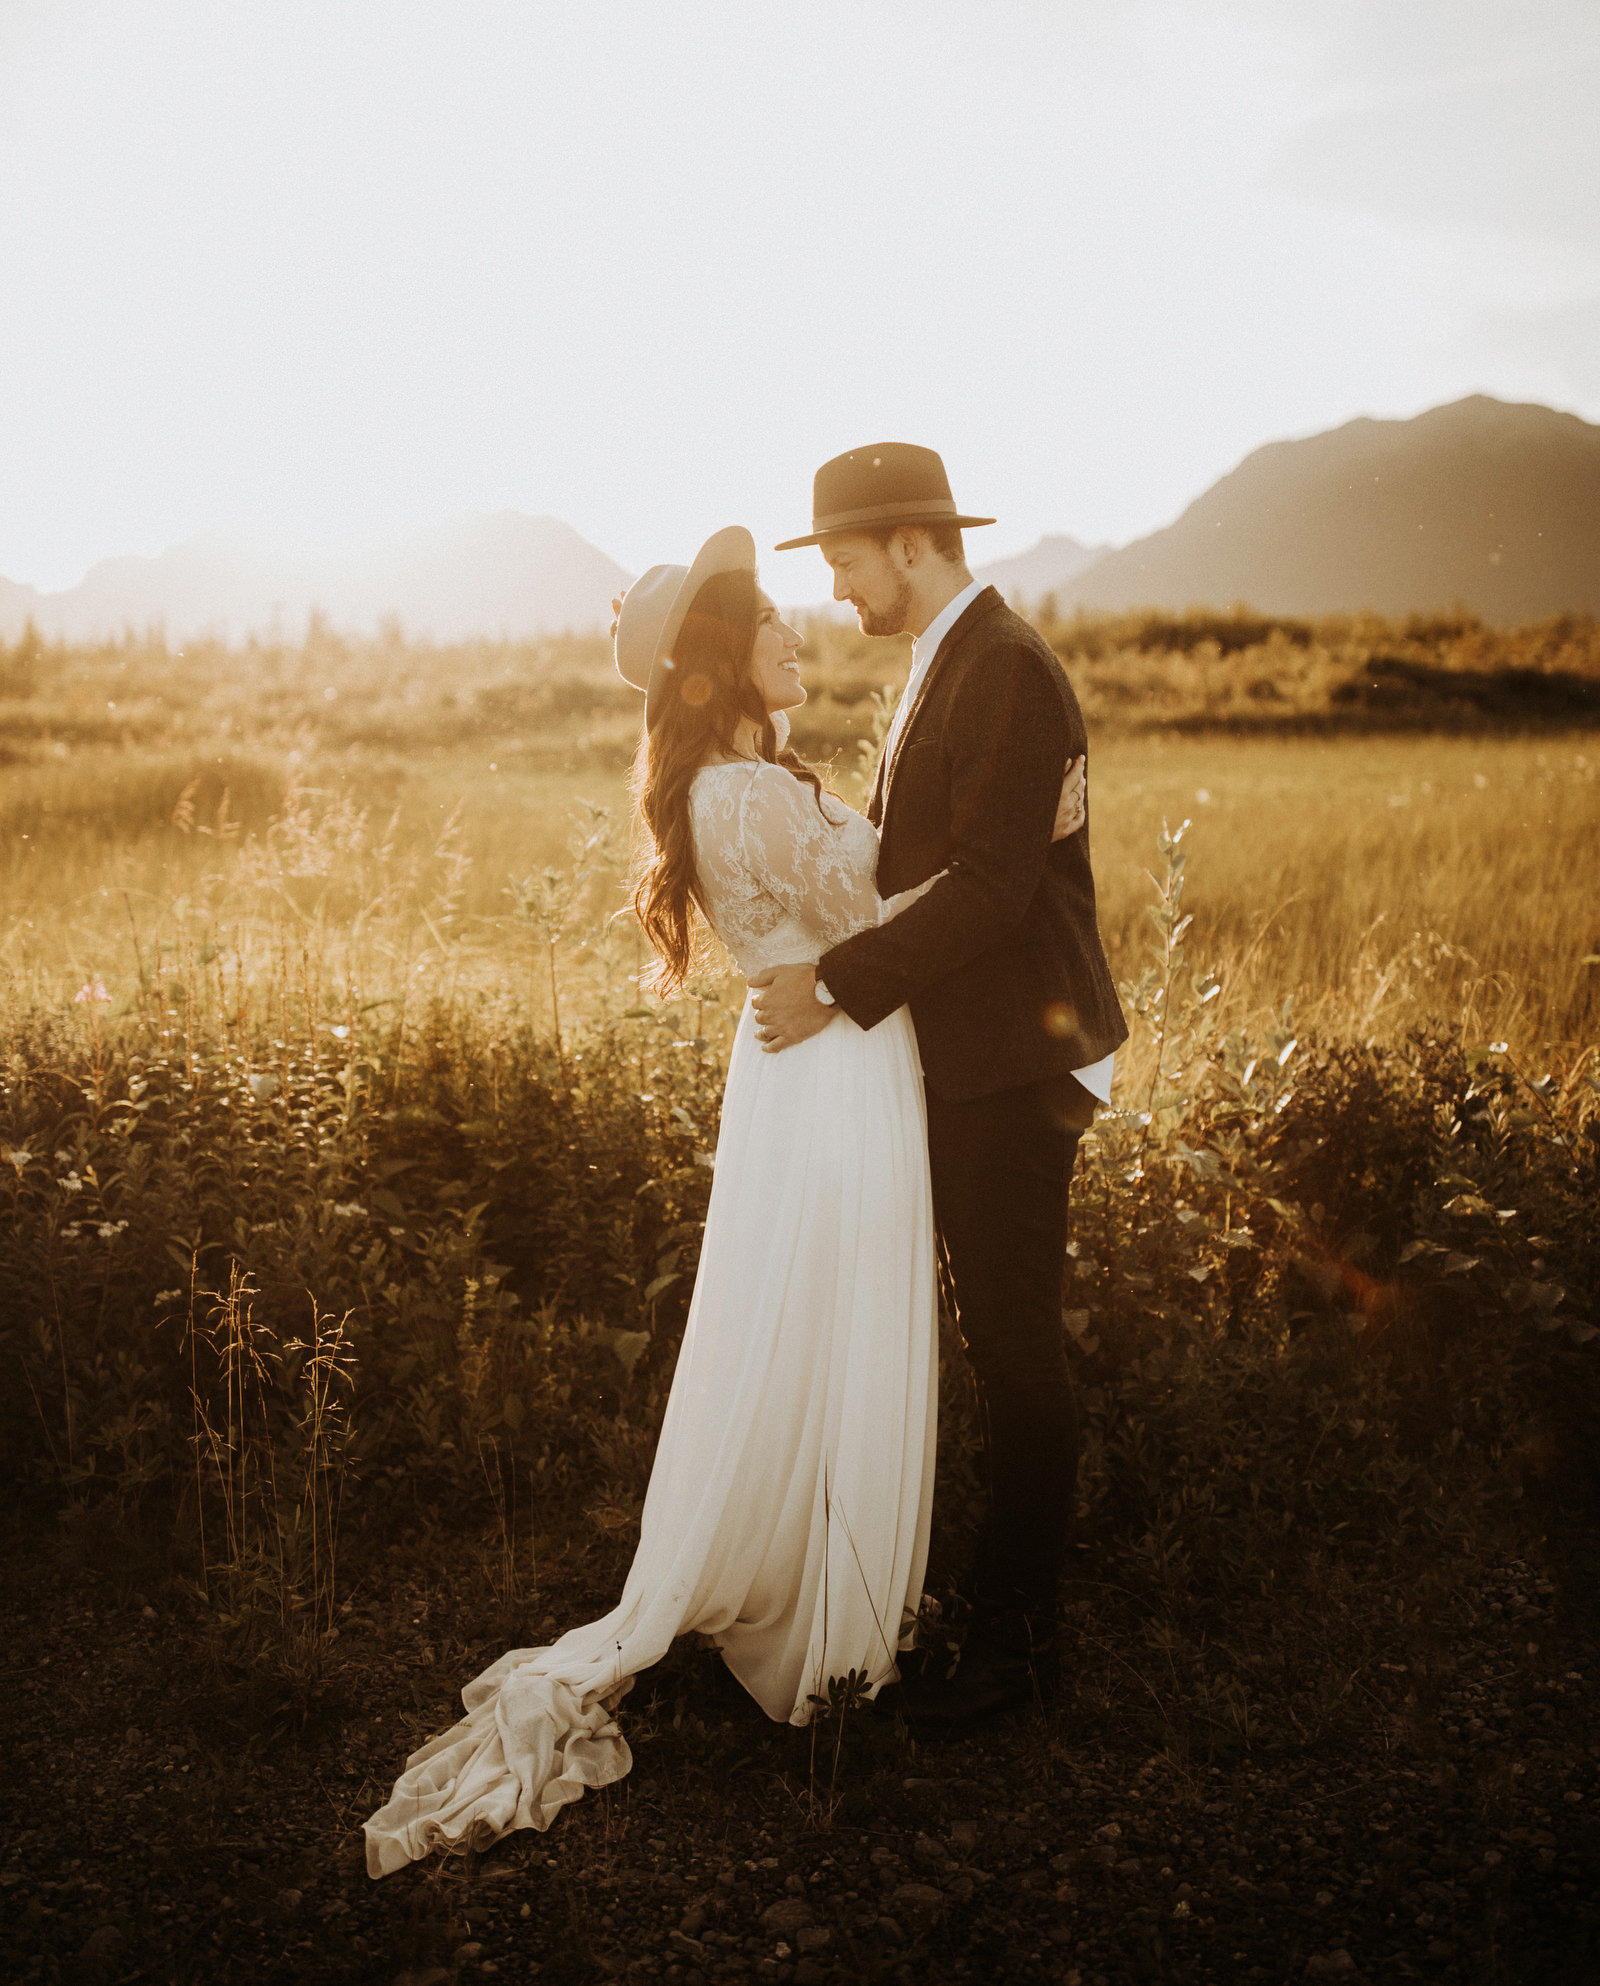 athena-and-camron-alaska-elopement-wedding-inspiration-india-earl-athena-grace-glacier-lagoon-wedding54